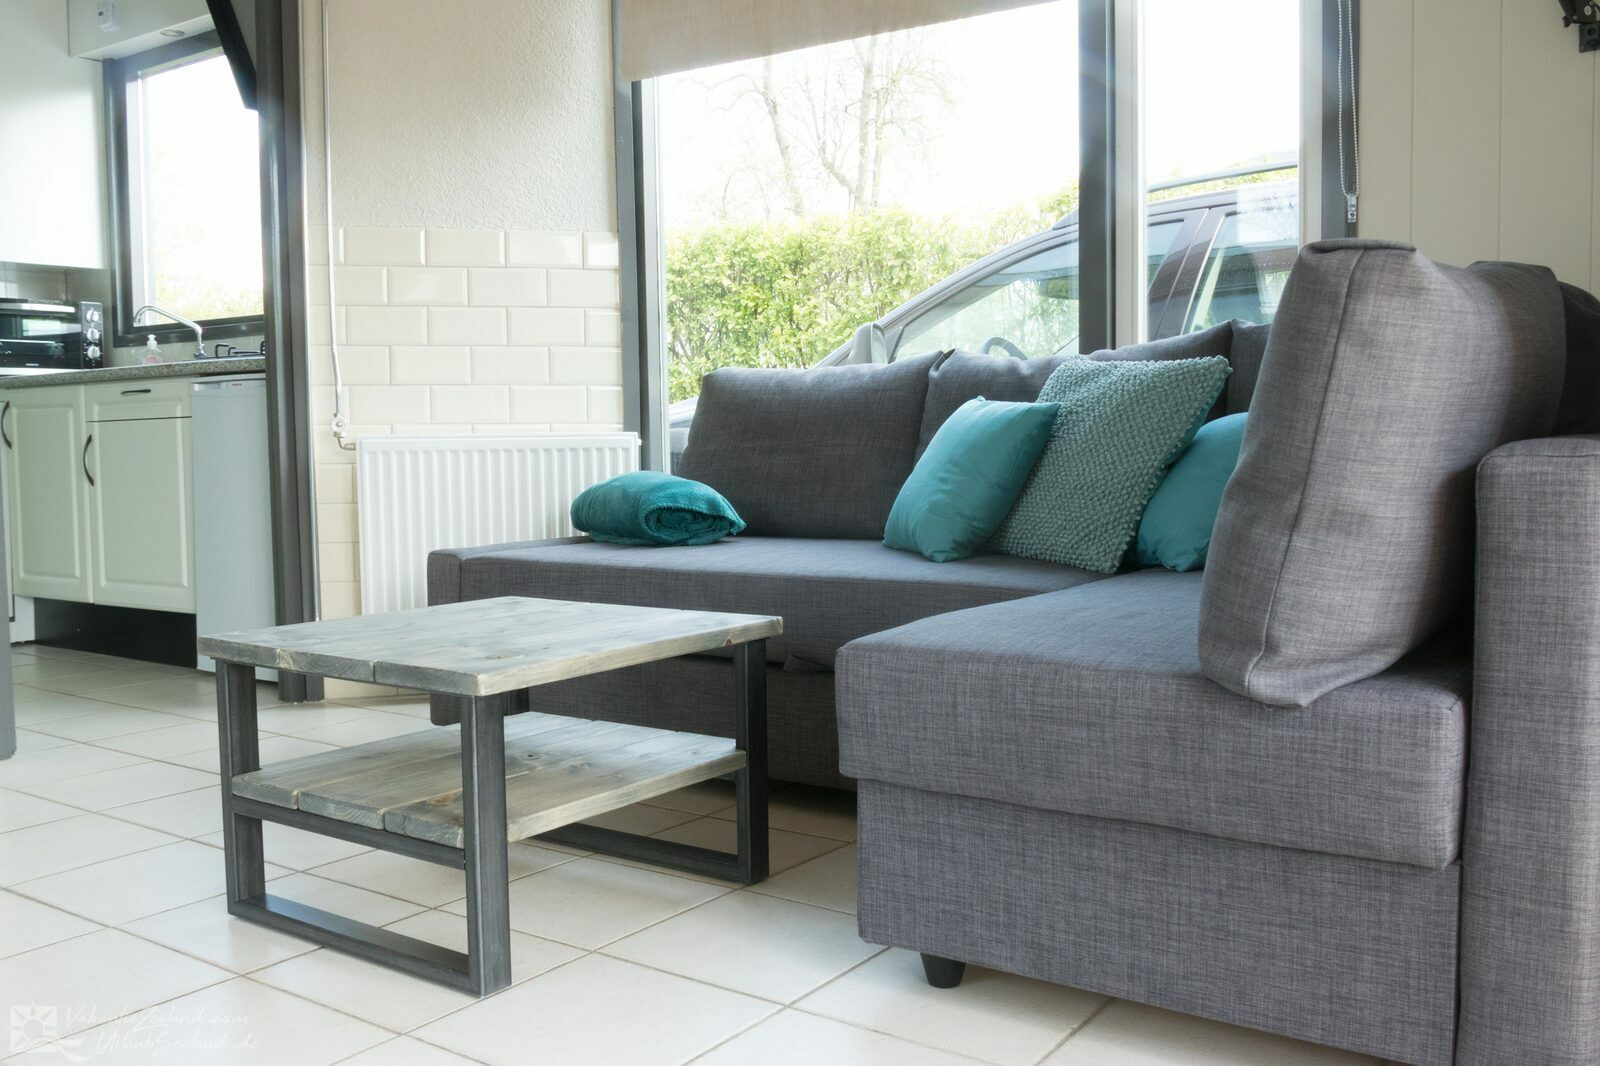 VZ979 Holiday bungalow in Baarland